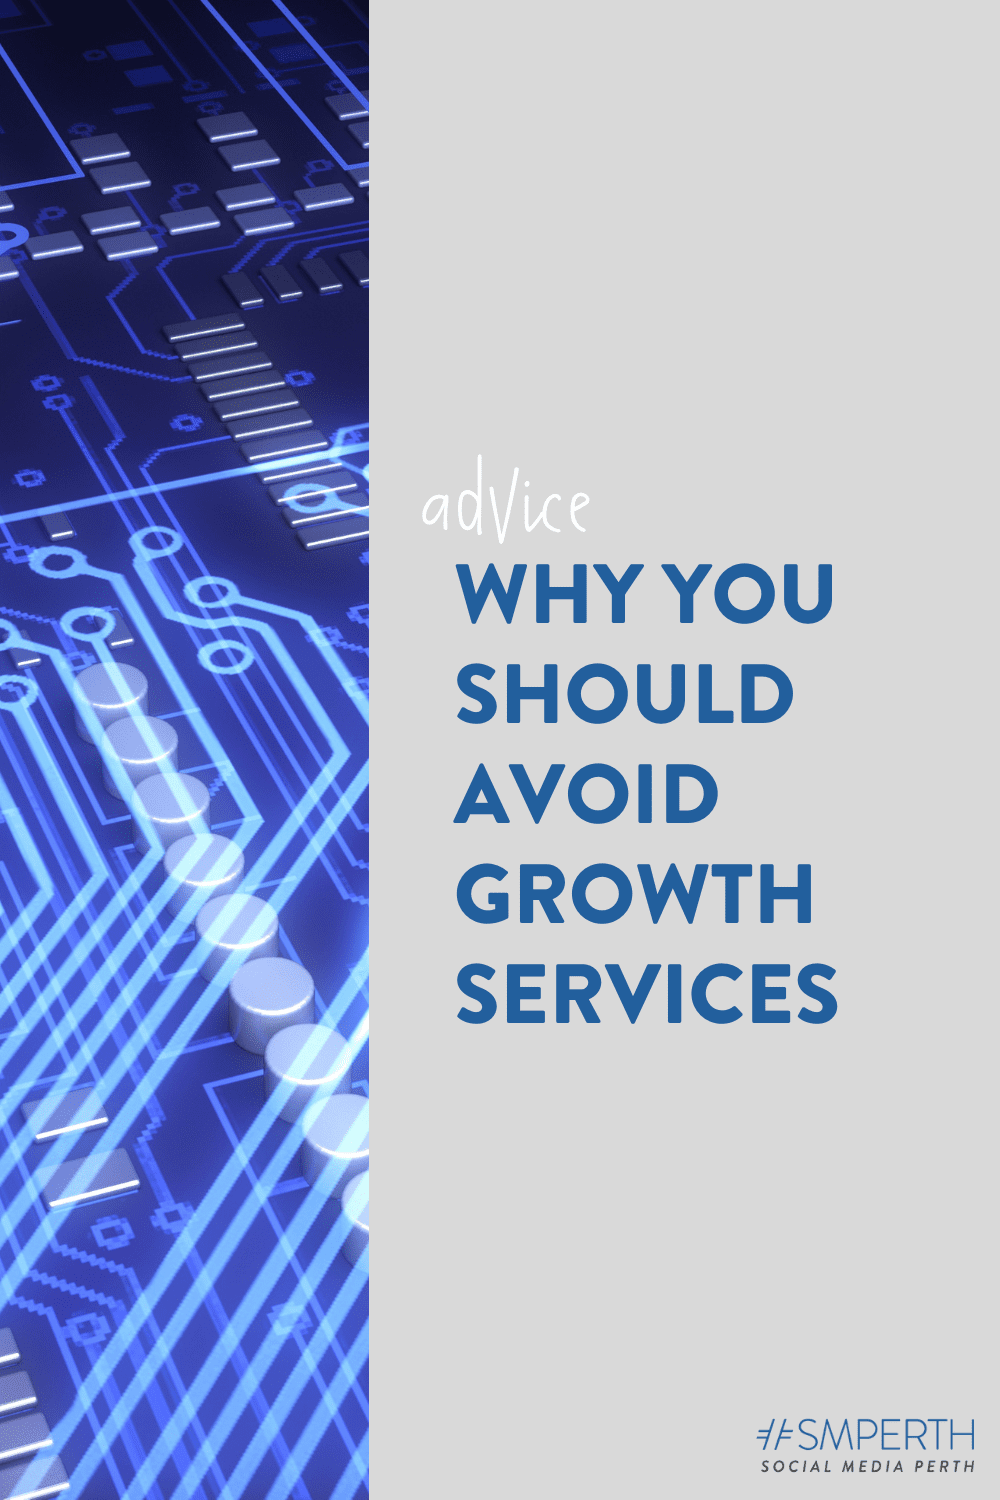 Why you should avoid growth services